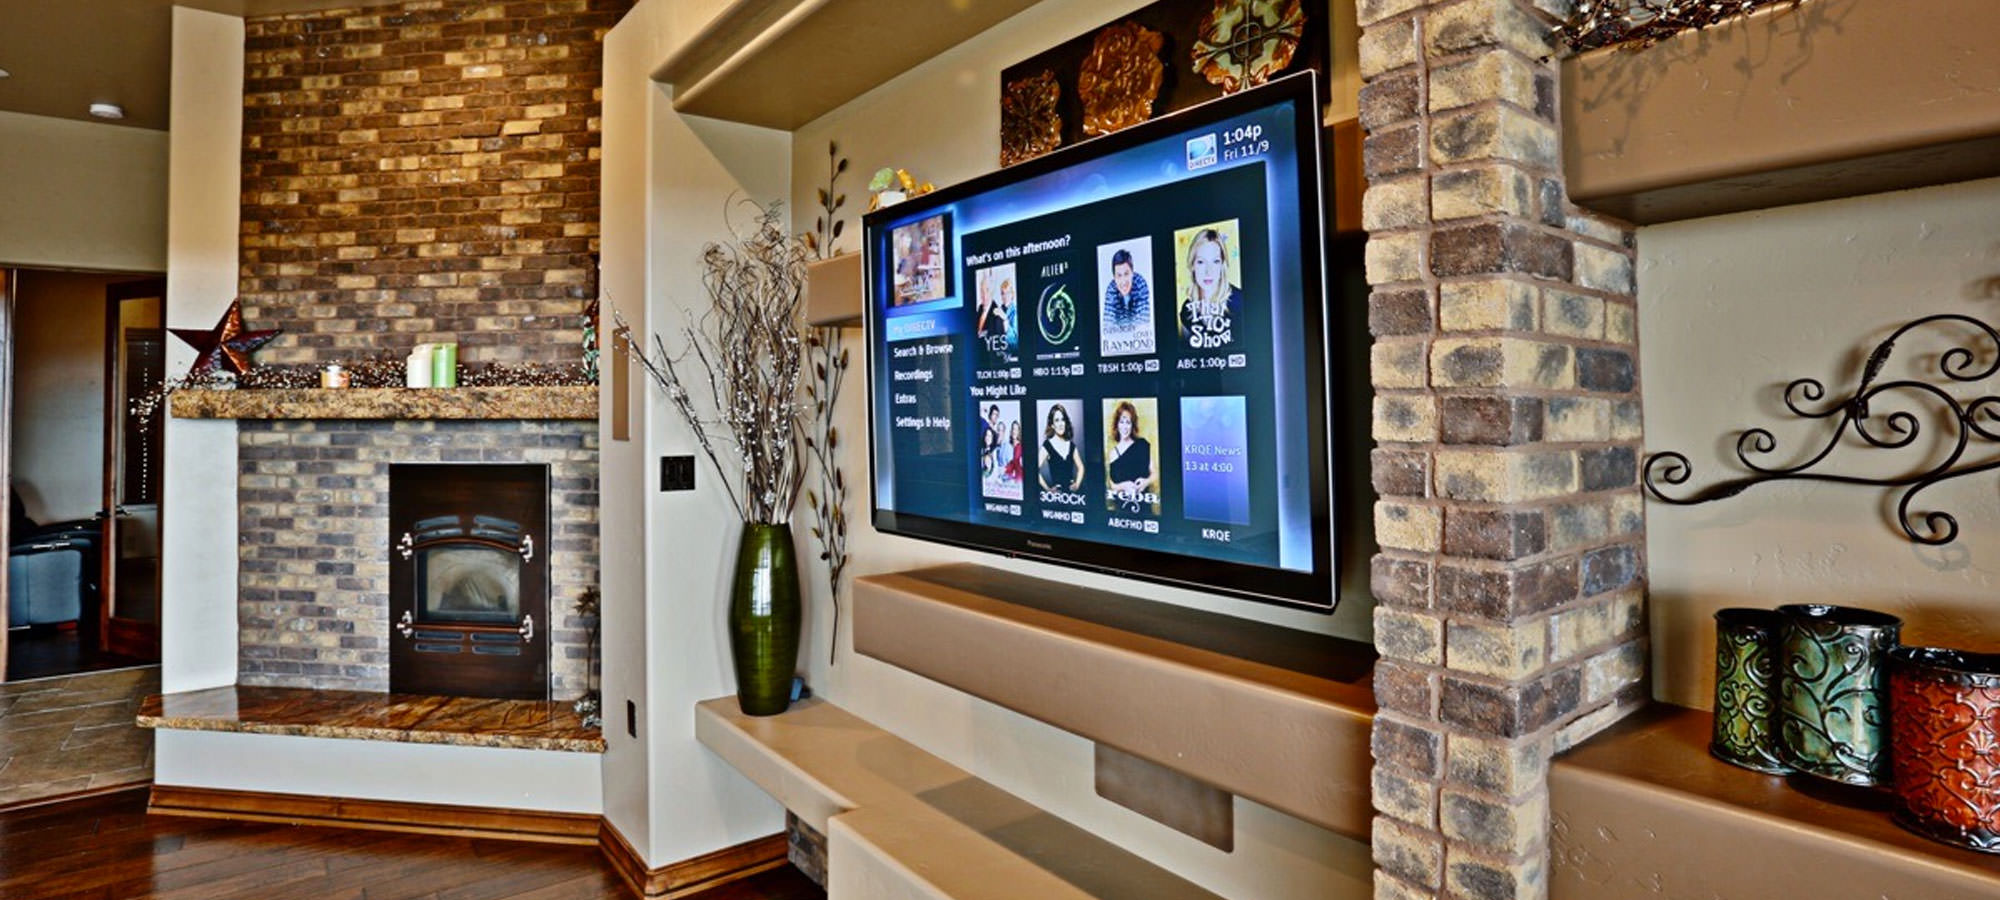 When Is It Time To Upgrade Your TV?